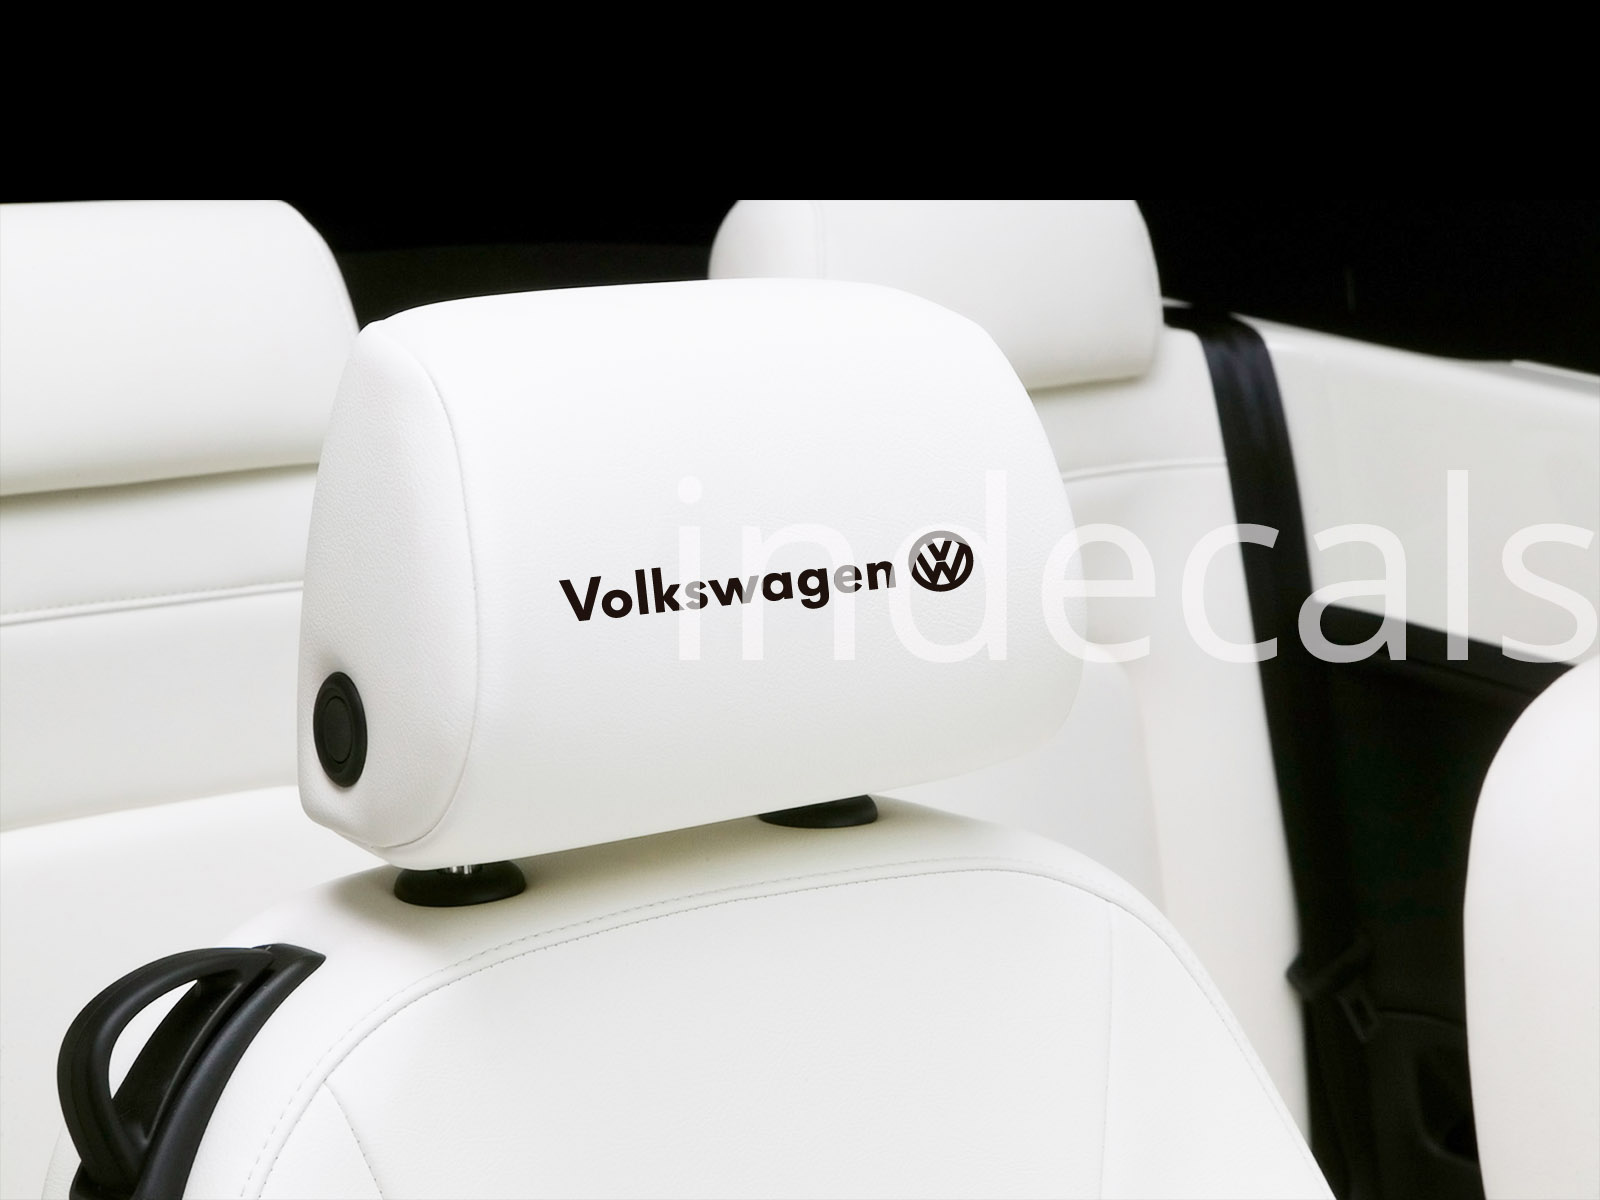 6 x Volkswagen Stickers for Headrests - Black